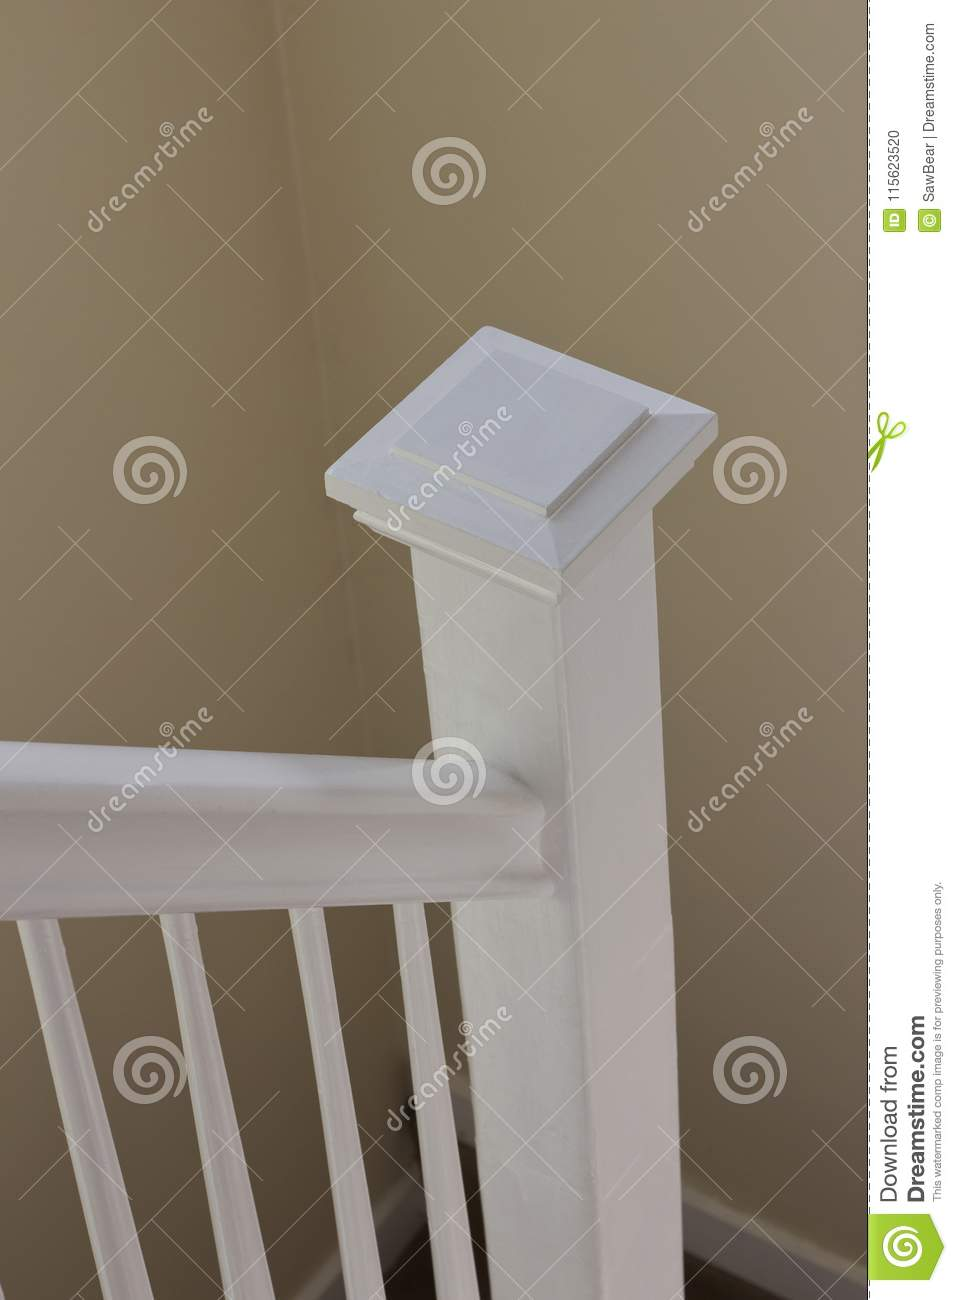 Download White Stair Bannister In Stairwell Stock Photo   Image Of Estate,  Neutral: 115623520